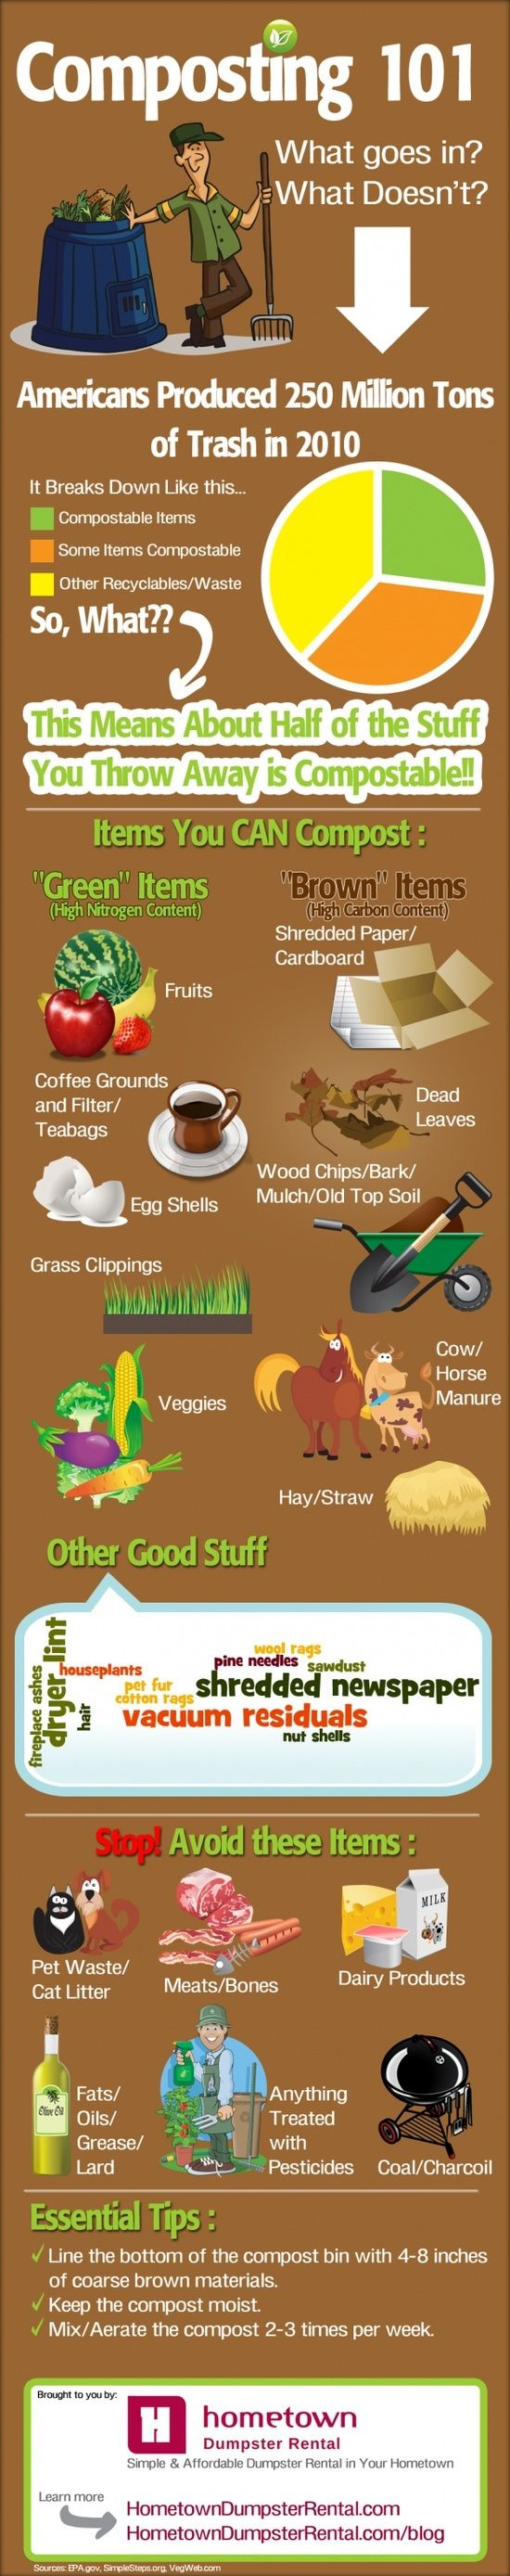 #Composting 101 [infographic] #compost #diy